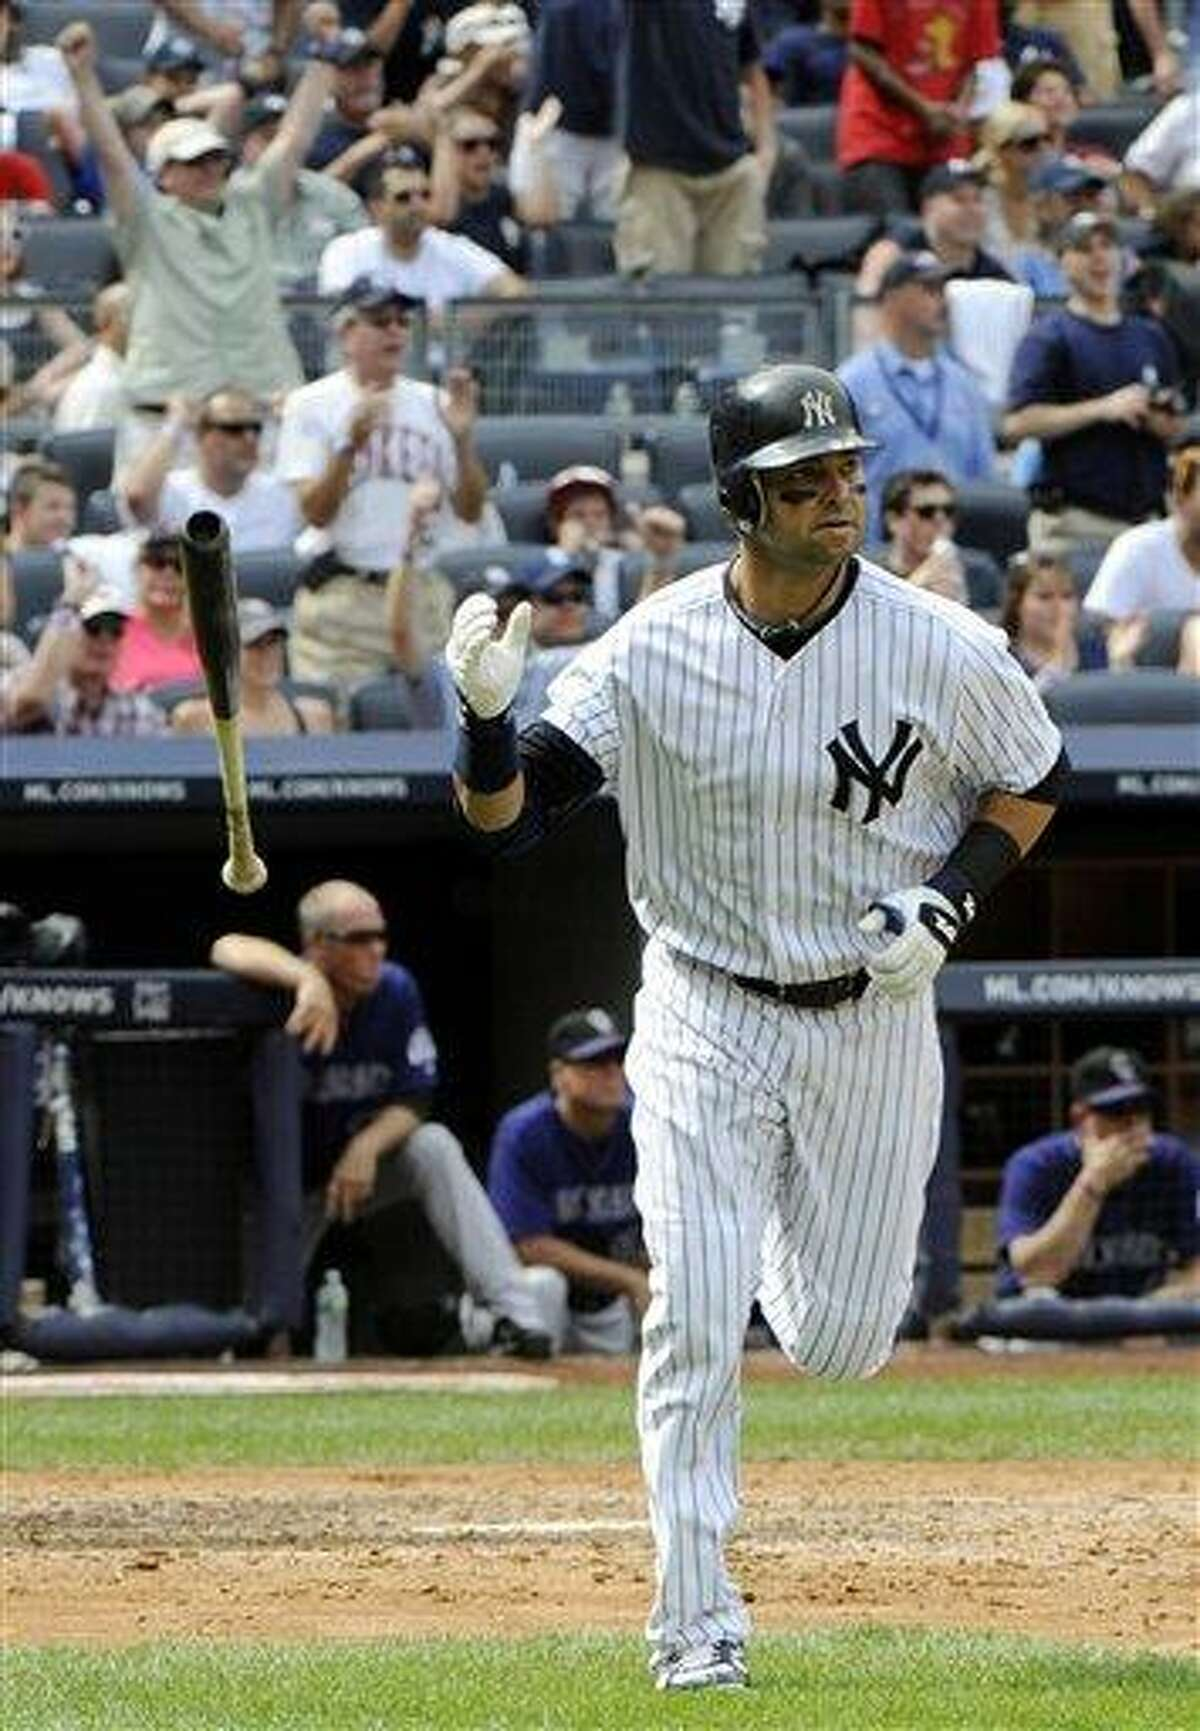 New York Yankees' Nick Swisher flips his bat after hitting a home run during the fifth inning of an interleague baseball game against the Colorado Rockies on Sunday, June 26, 2011, at Yankee Stadium in New York. (AP Photo/Bill Kostroun)